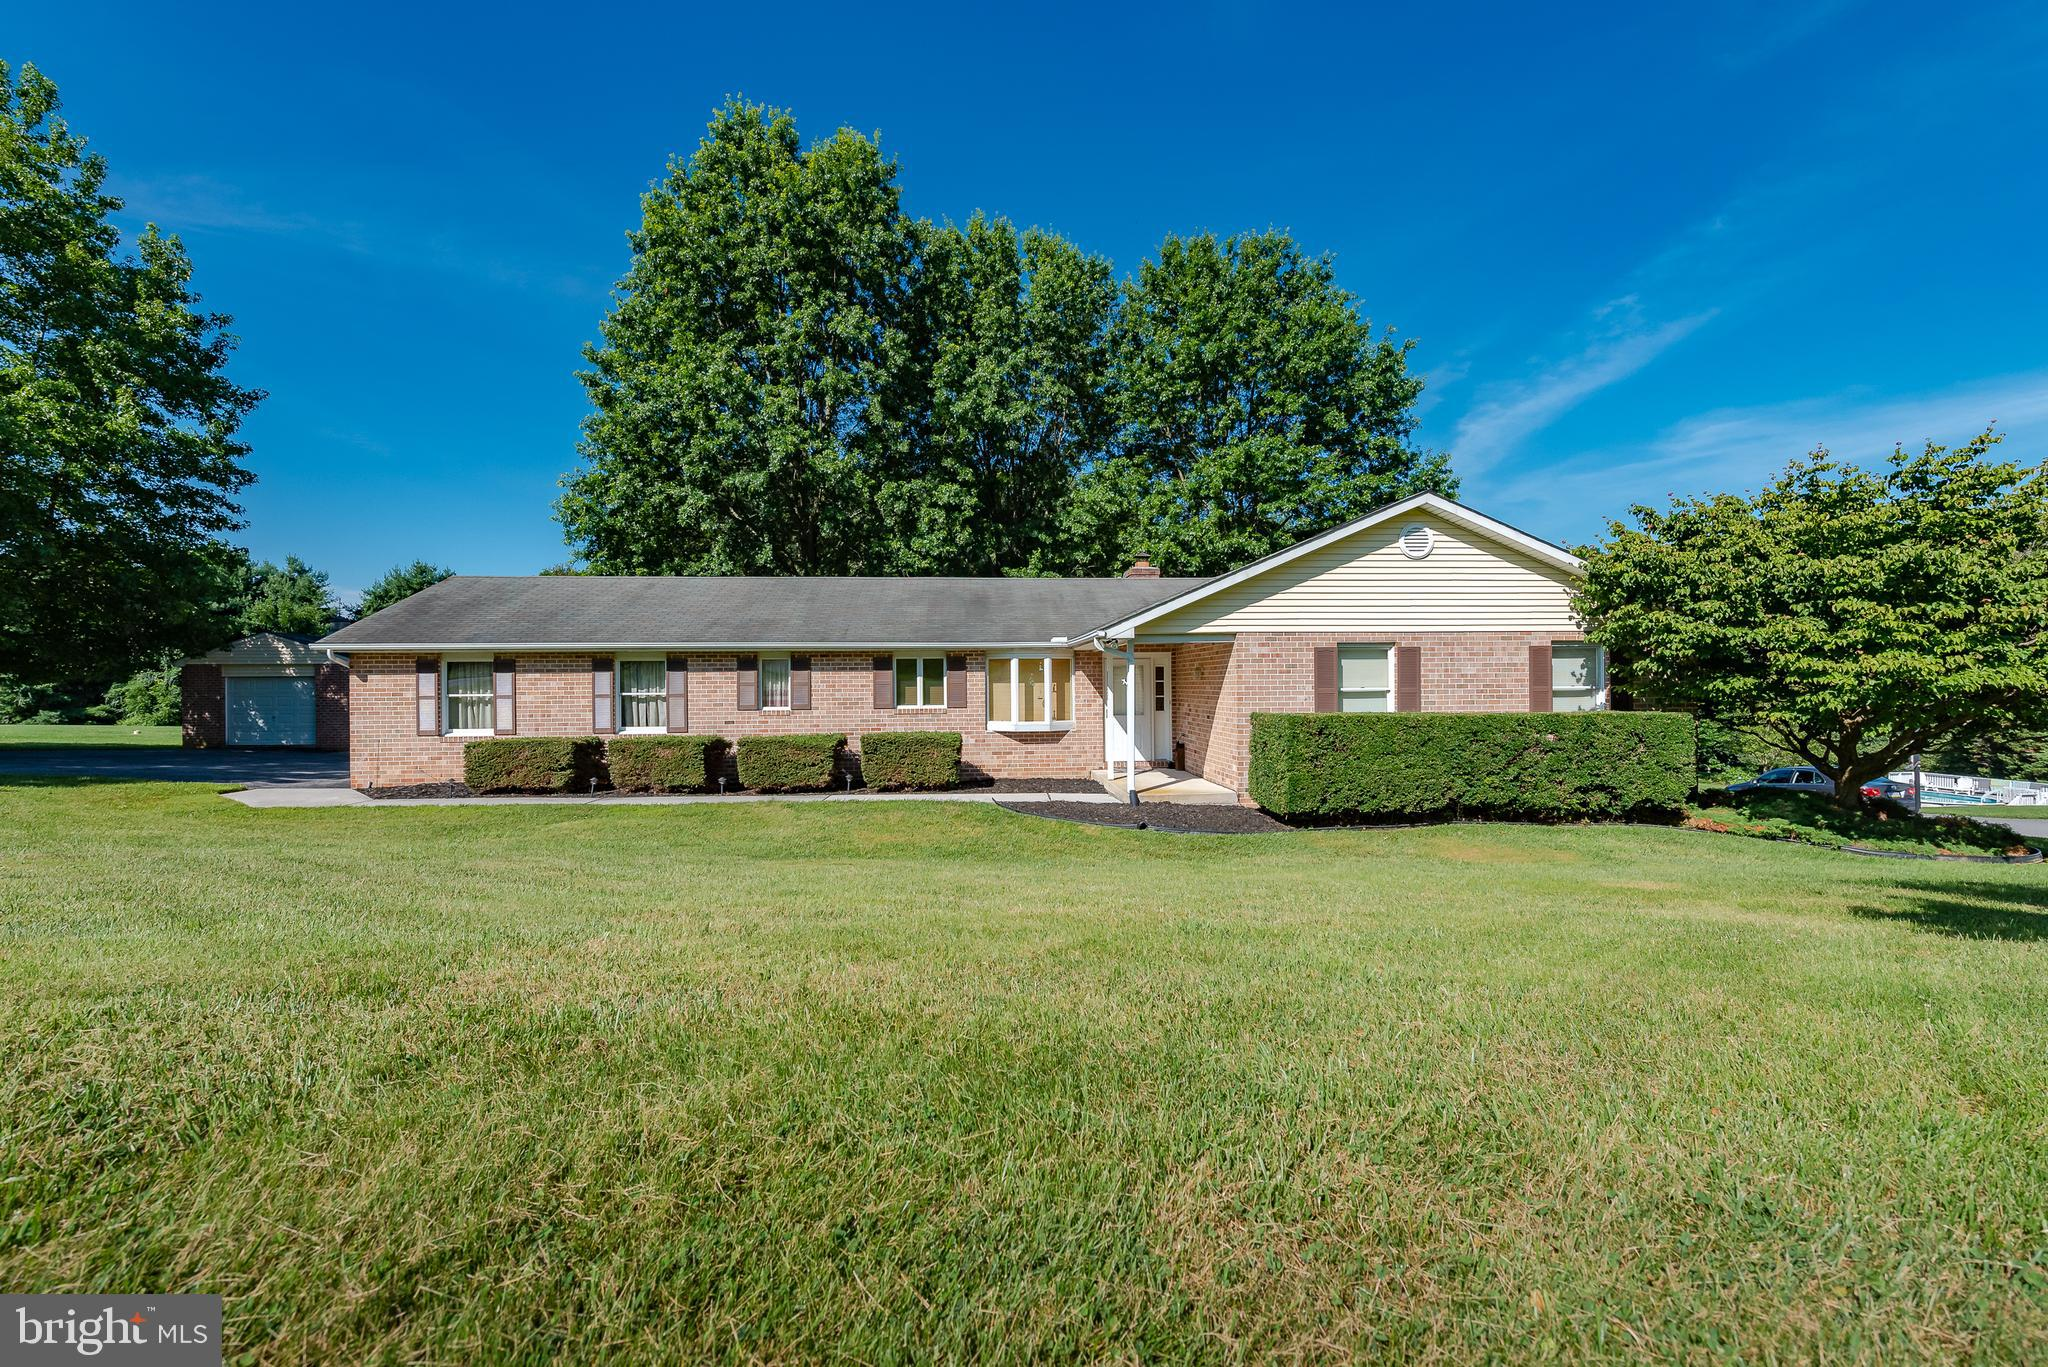 Welcome to this lovely ranch style home situated on just over an acre with mature shade trees and pl